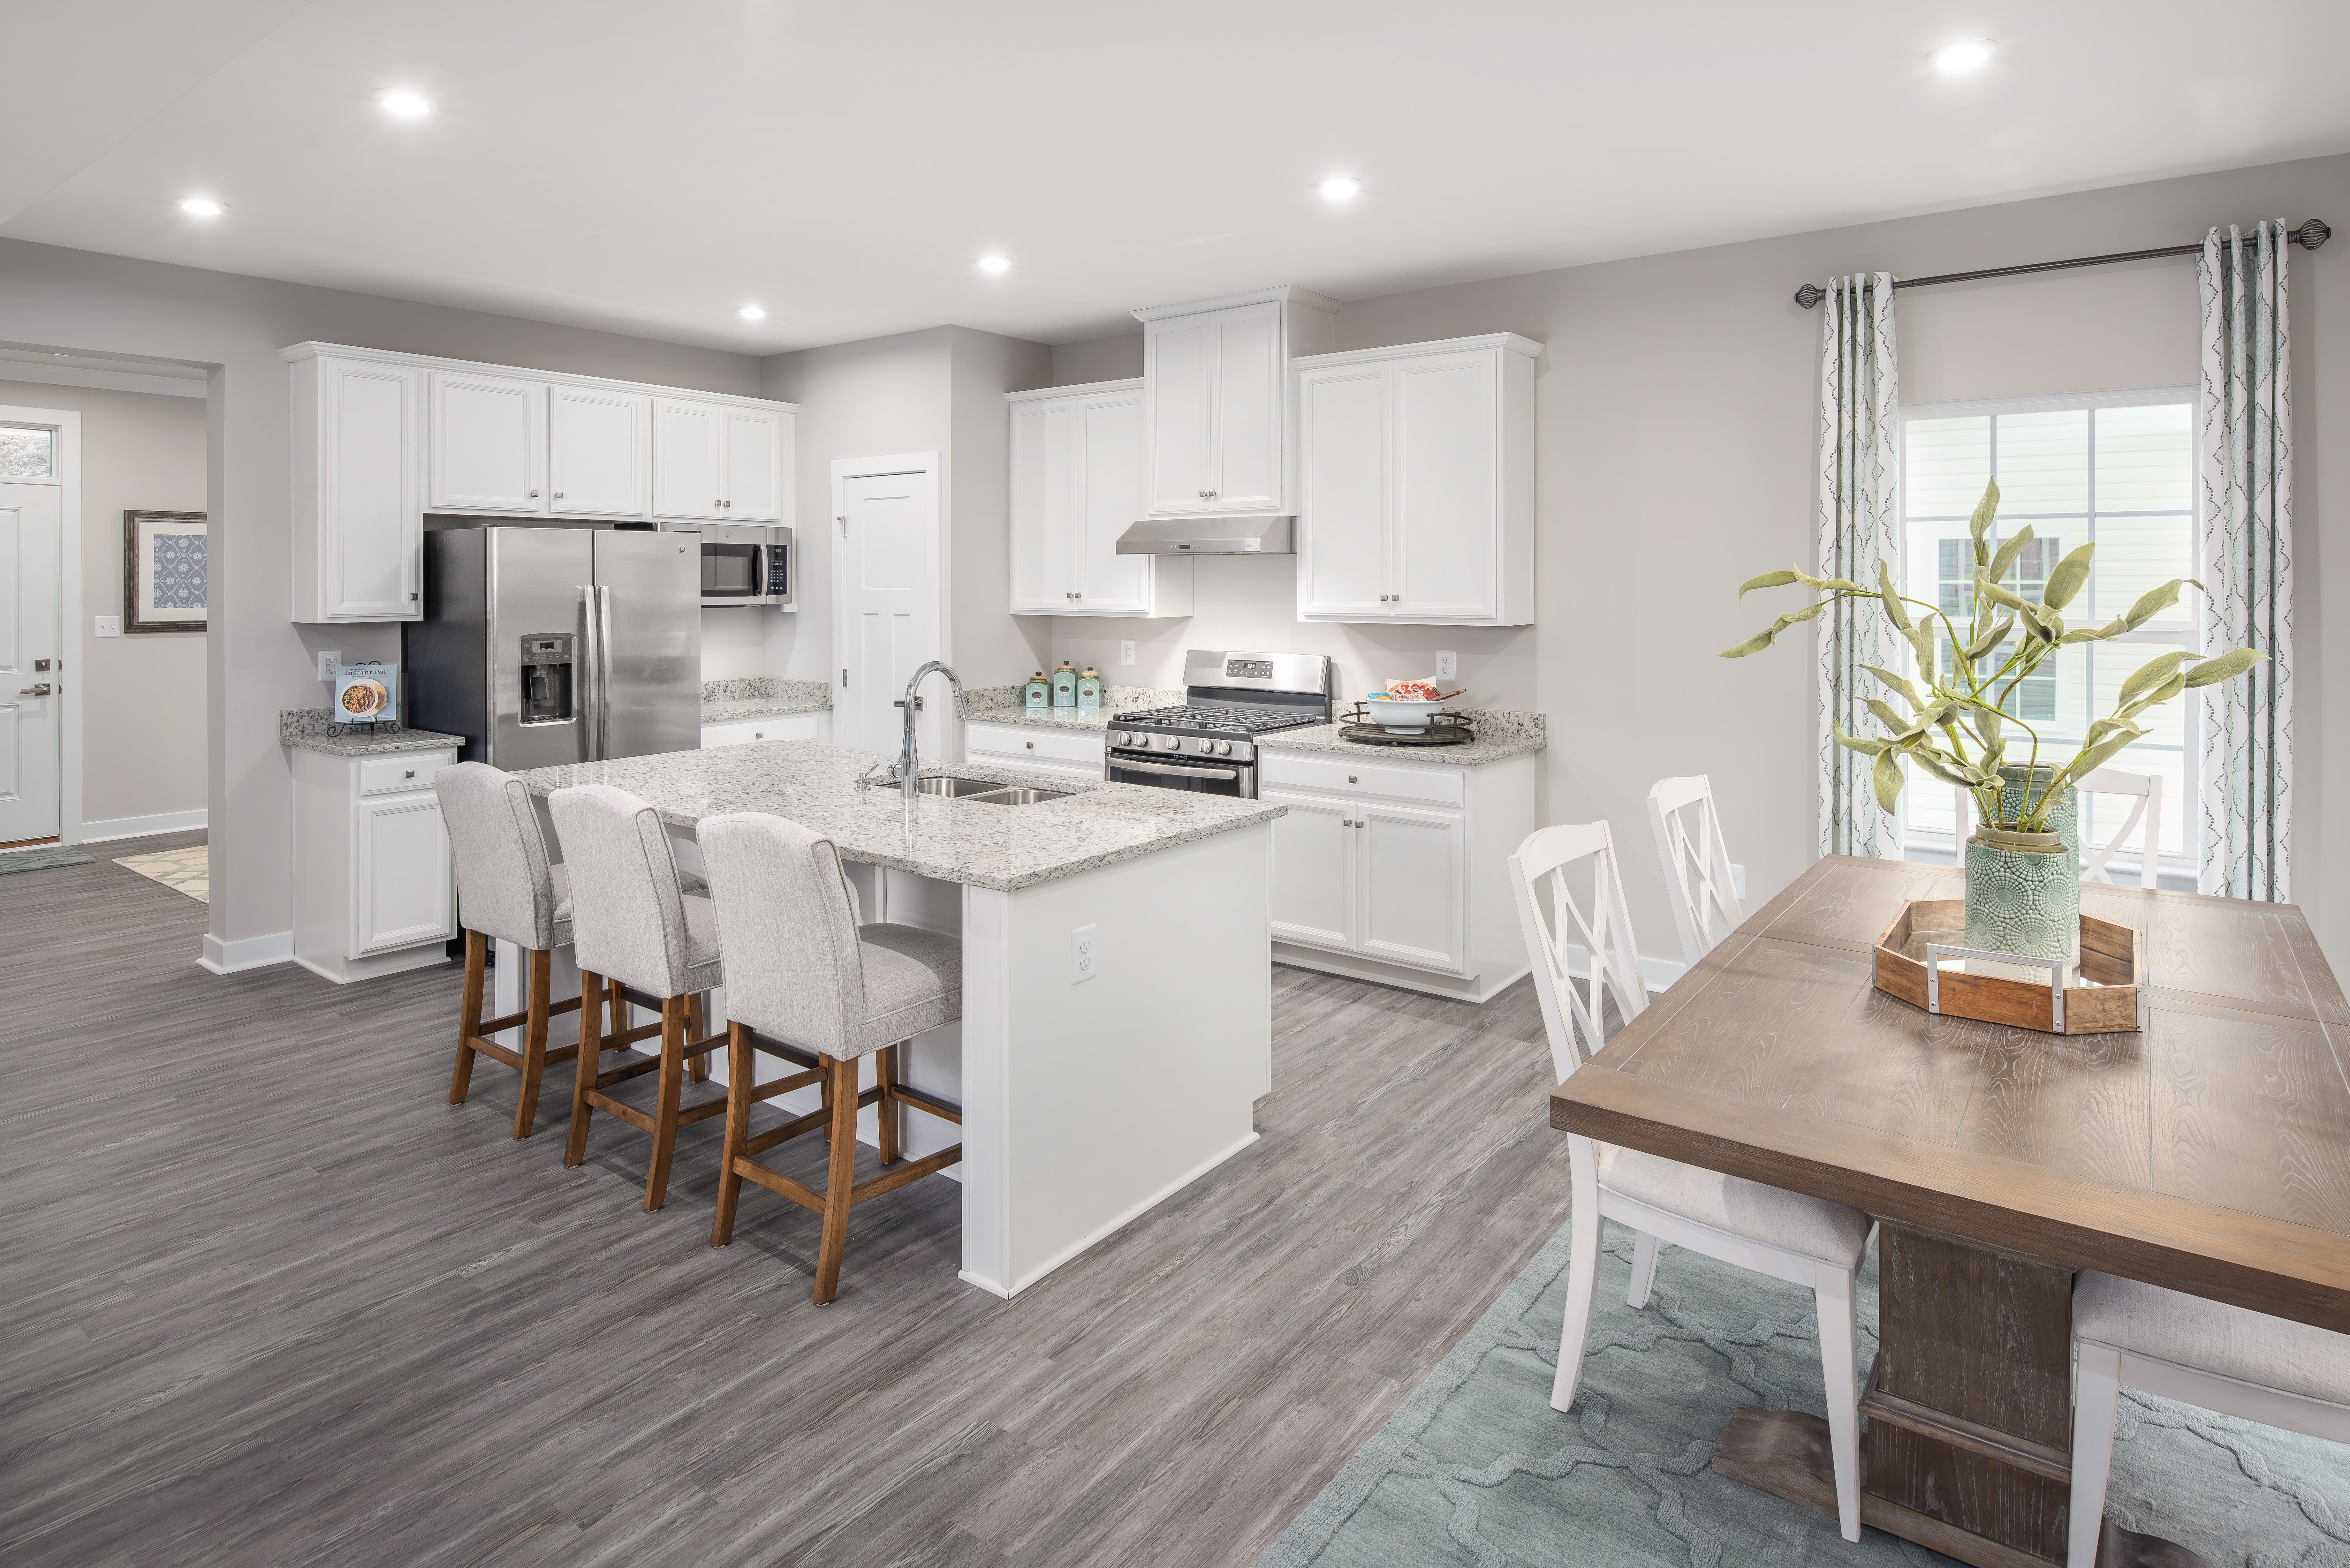 Kitchen featured in the Ballenger By Ryan Homes in Rochester, NY